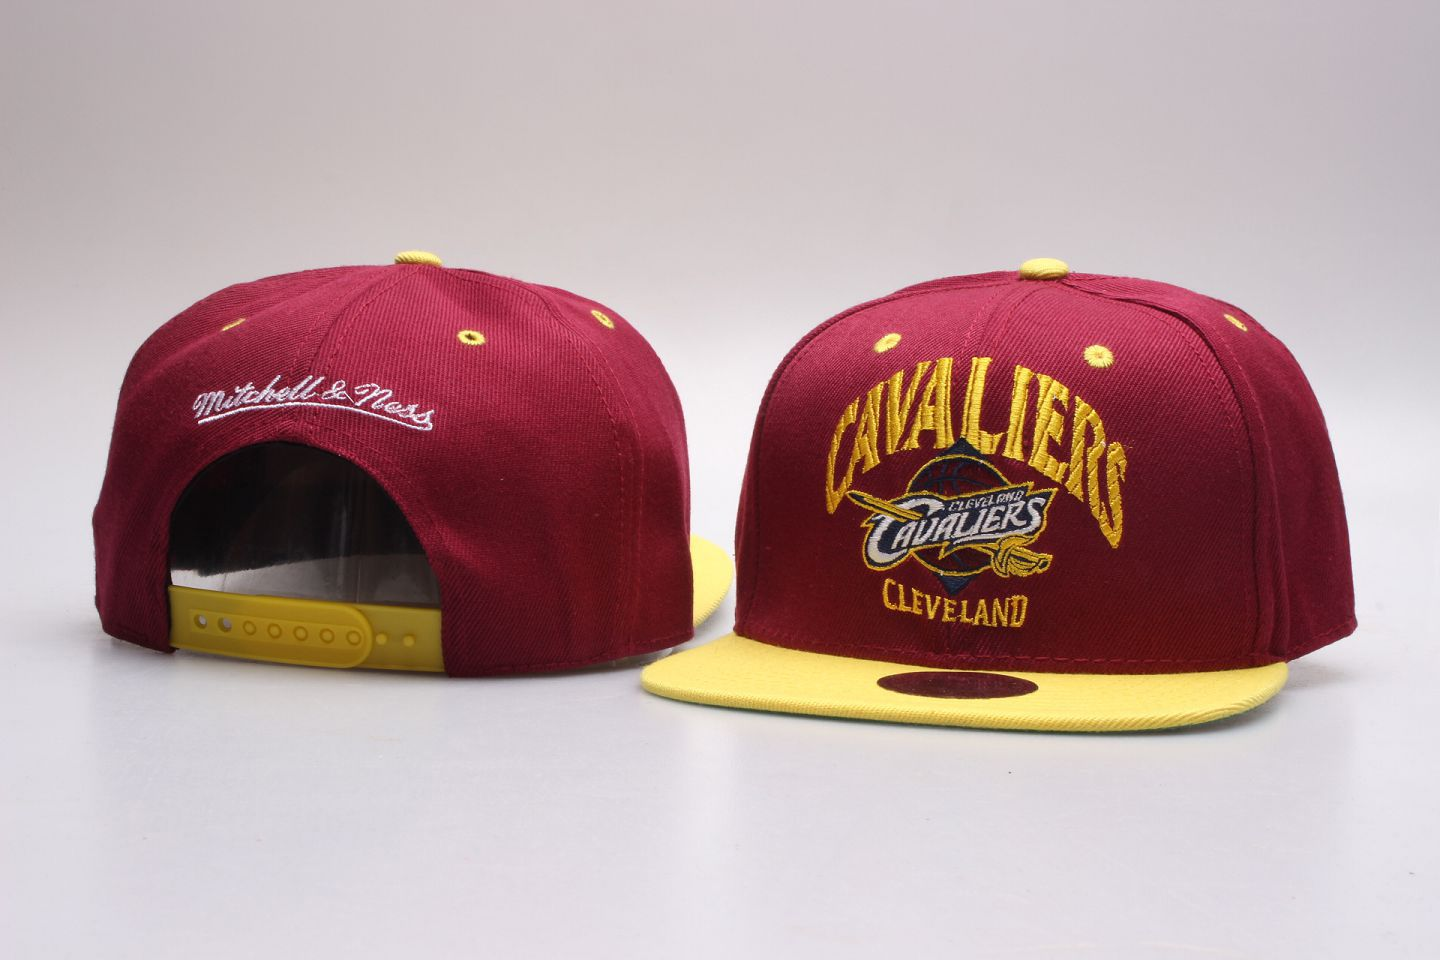 NBA Cleveland Cavaliers Snapback hat 201811255